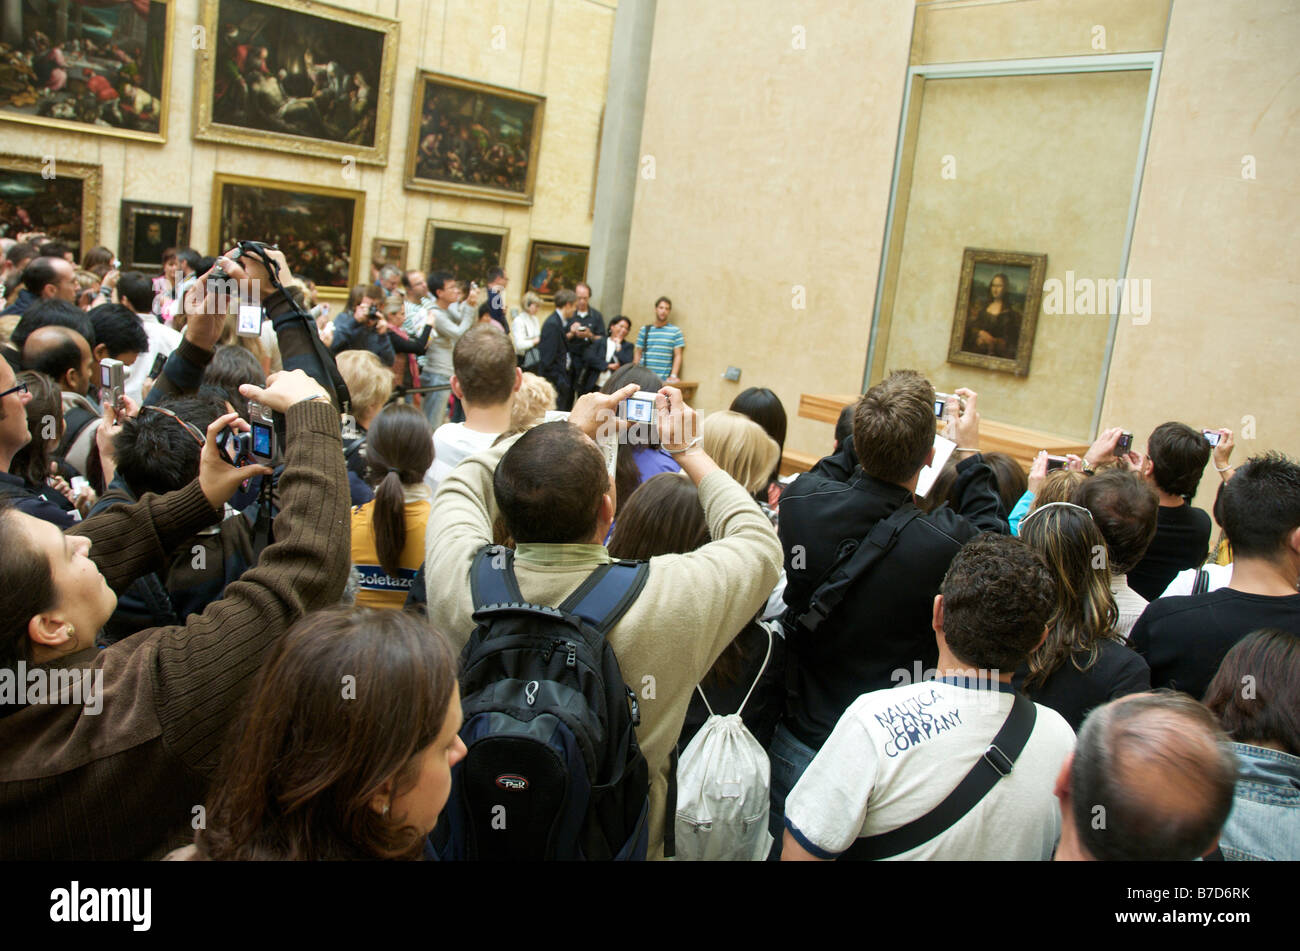 Mona Lisa - Crowd of tourists taking pictures of the painting in the Louvre, Paris, France - Stock Image